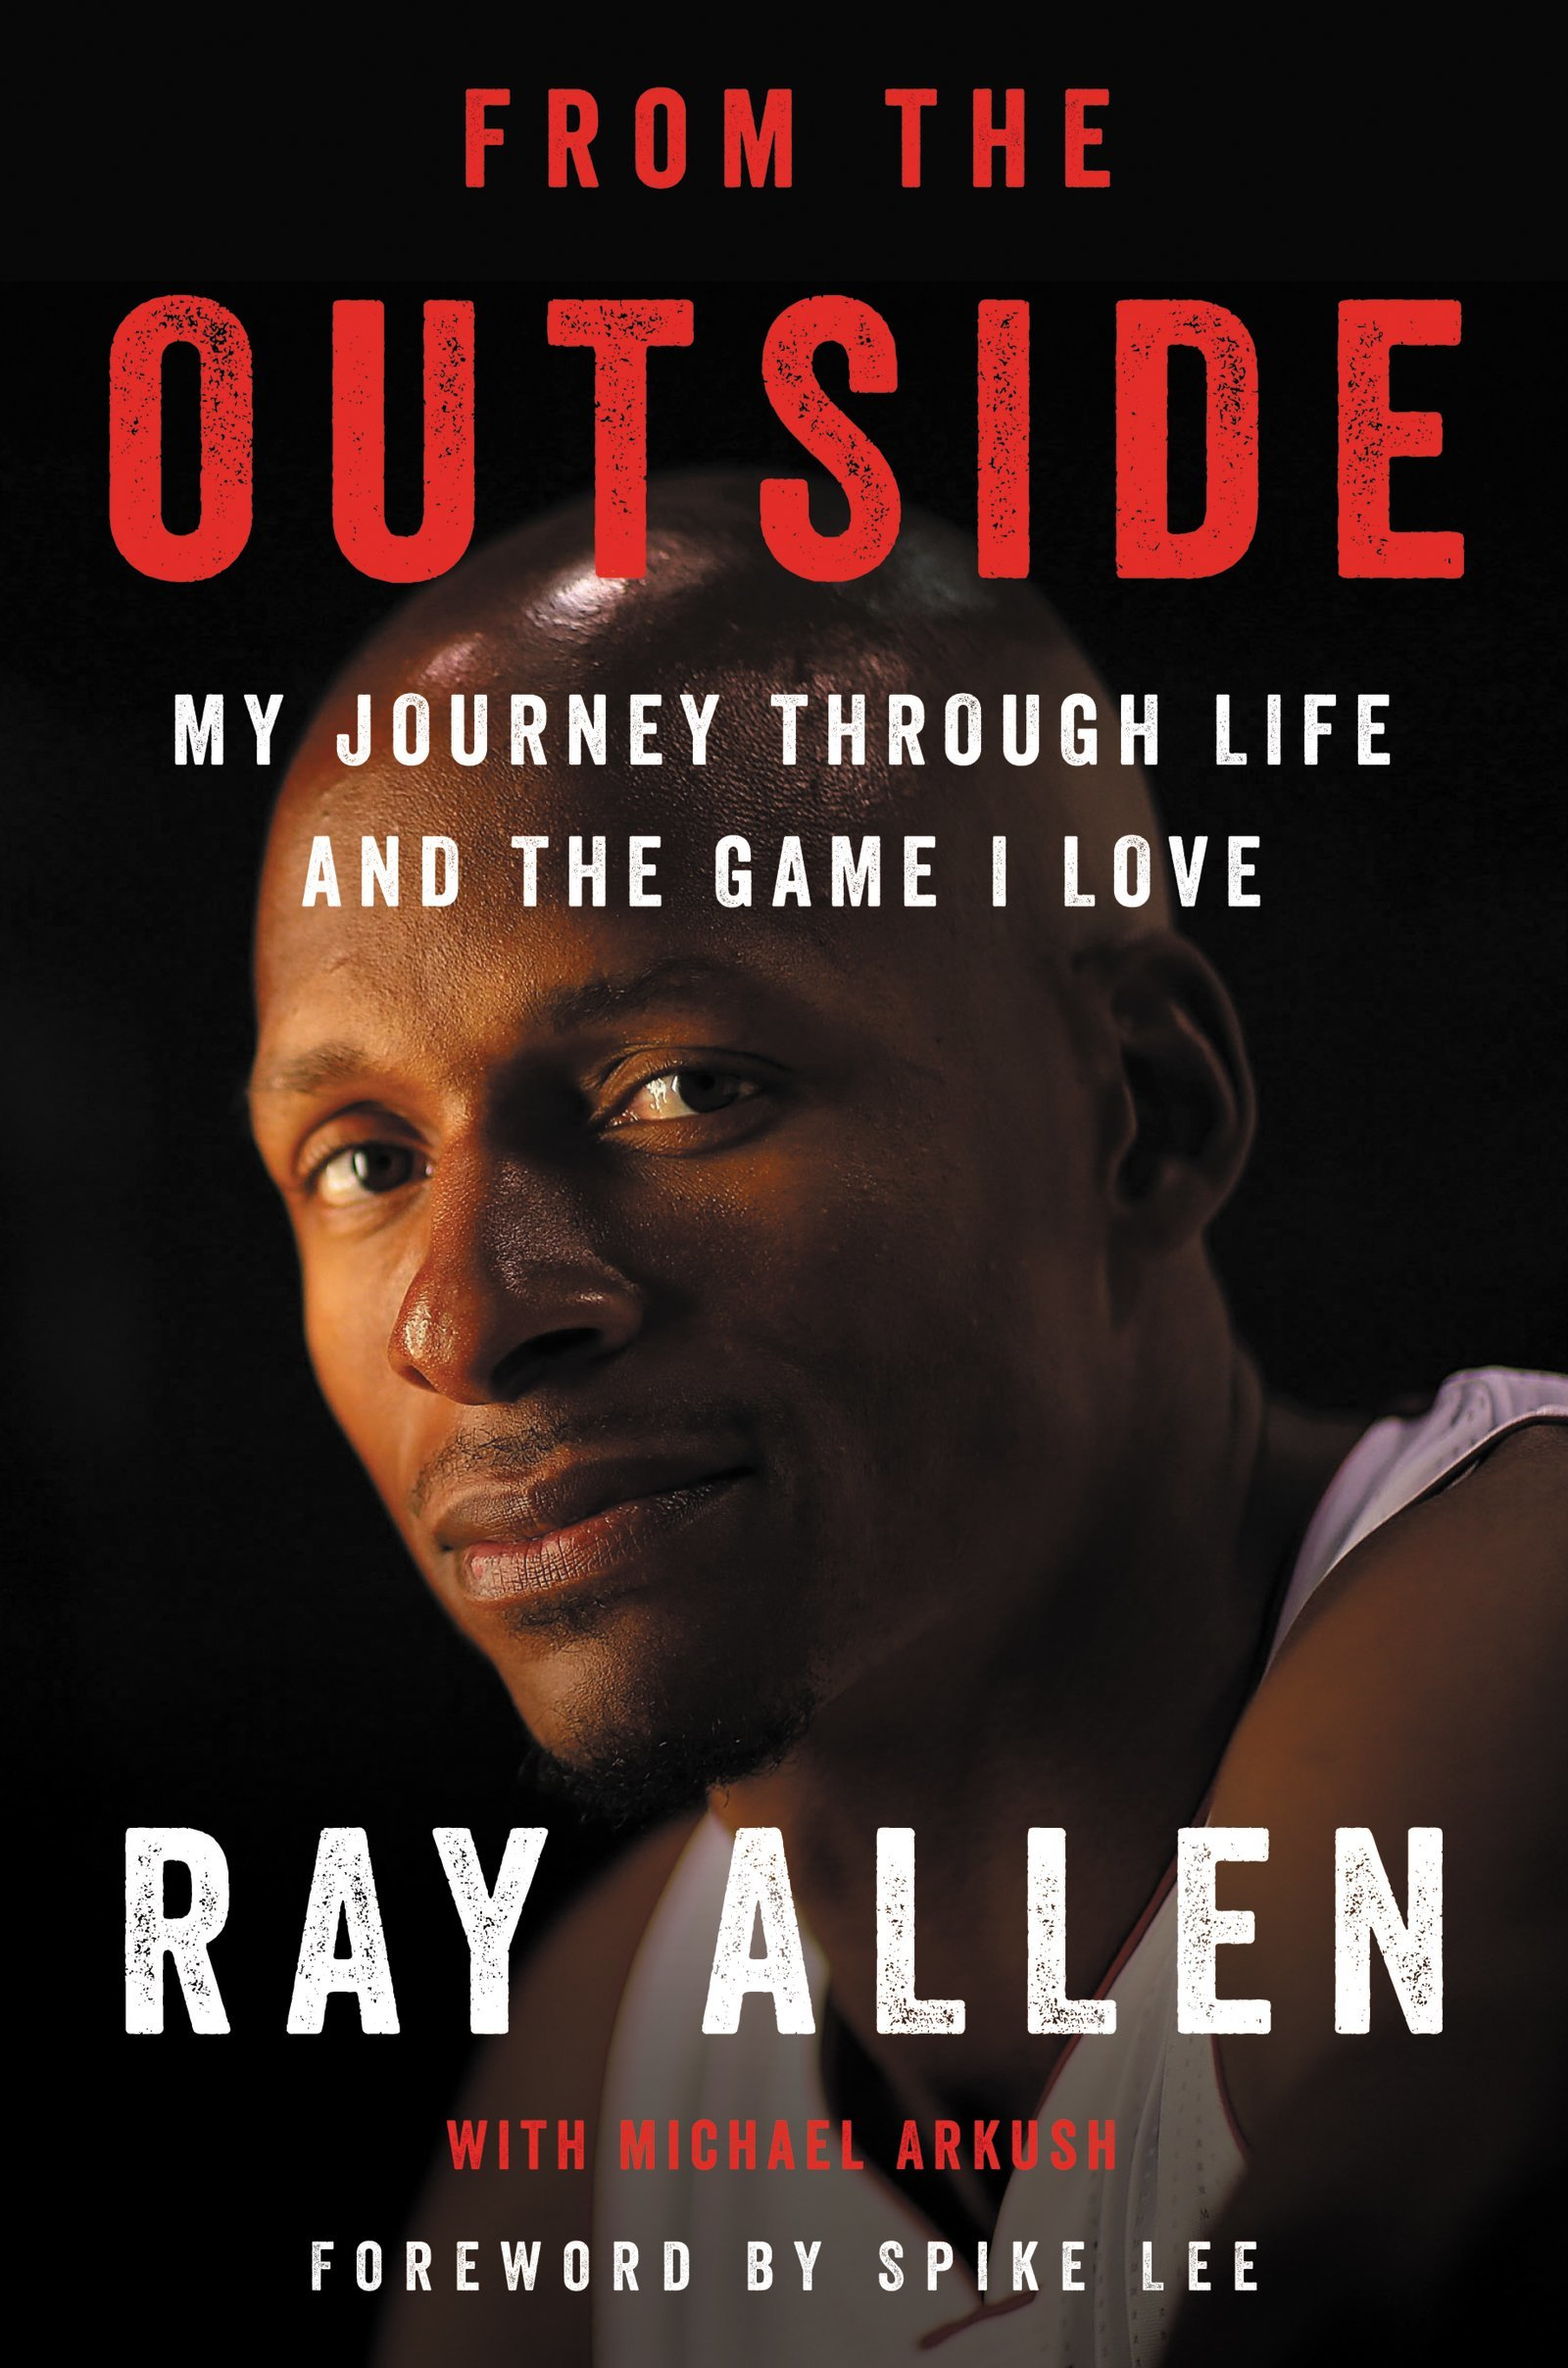 From the Outside My Journey Through Life and the Game I Love